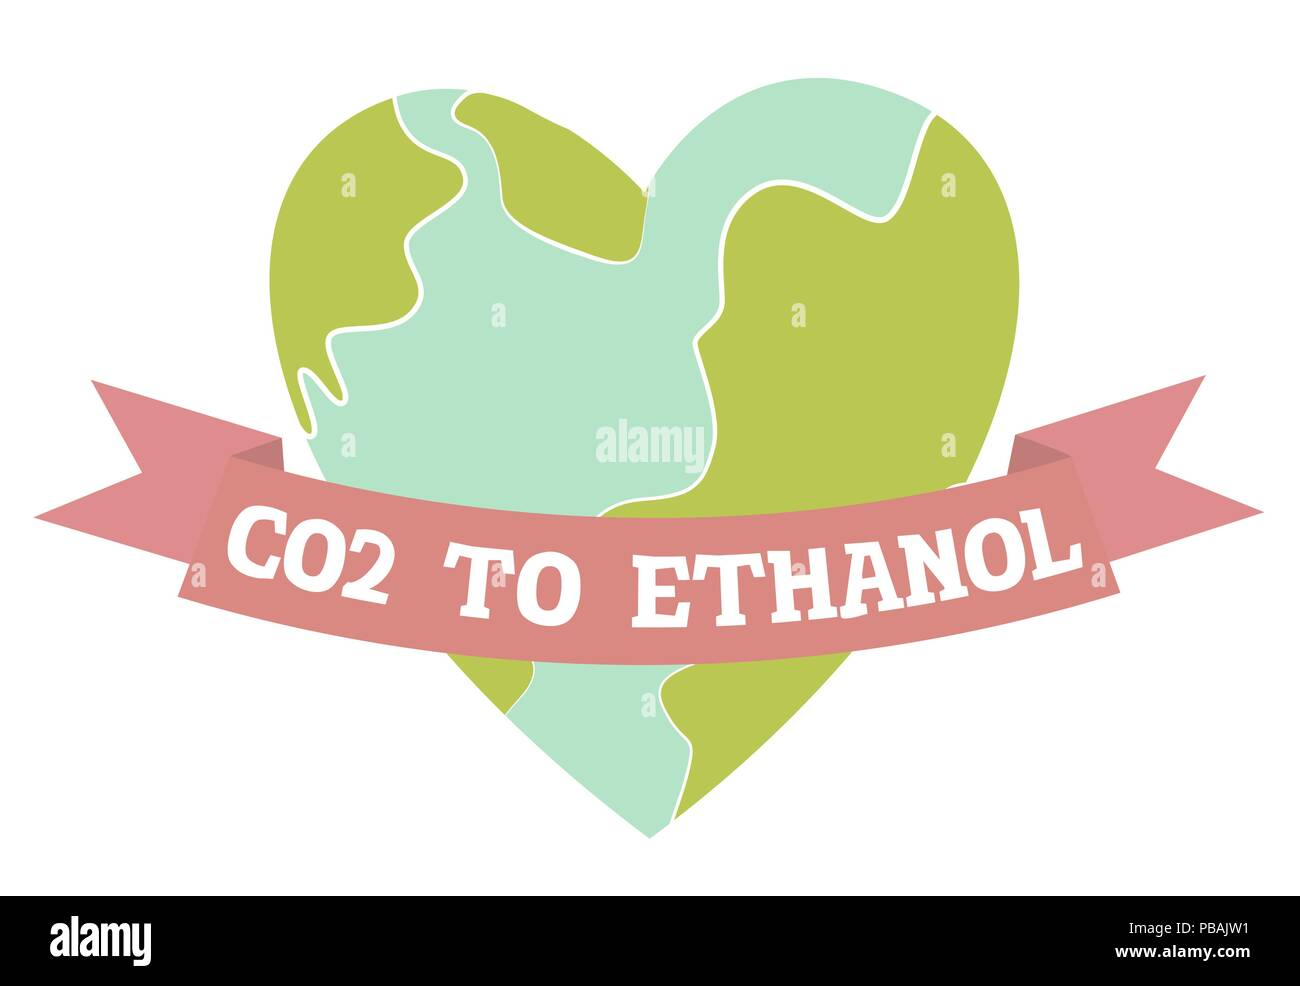 Co2 To Ethanol Planet Earth In A Heart Shape Flat Design Vector Illustration Stock Vector Image Art Alamy